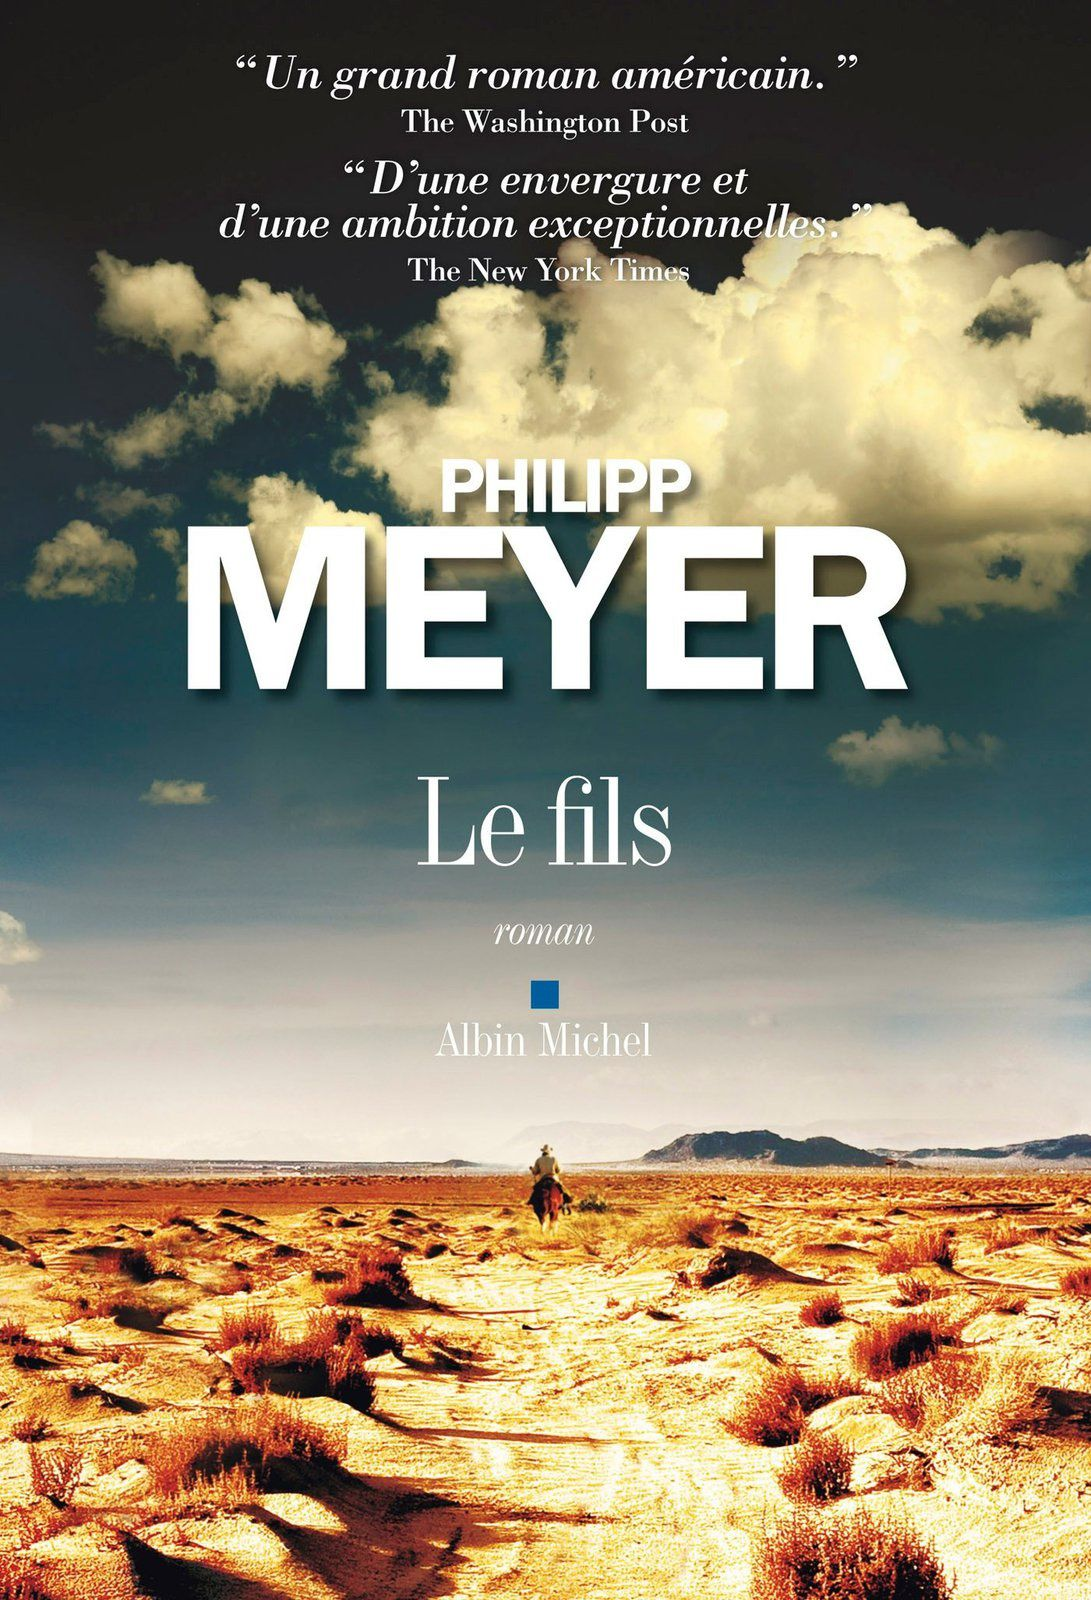 Le fils - Philipp MEYER (The Son, 2013), traduction de Sarah GURCEL, Albin Michel, 2014, 688 pages